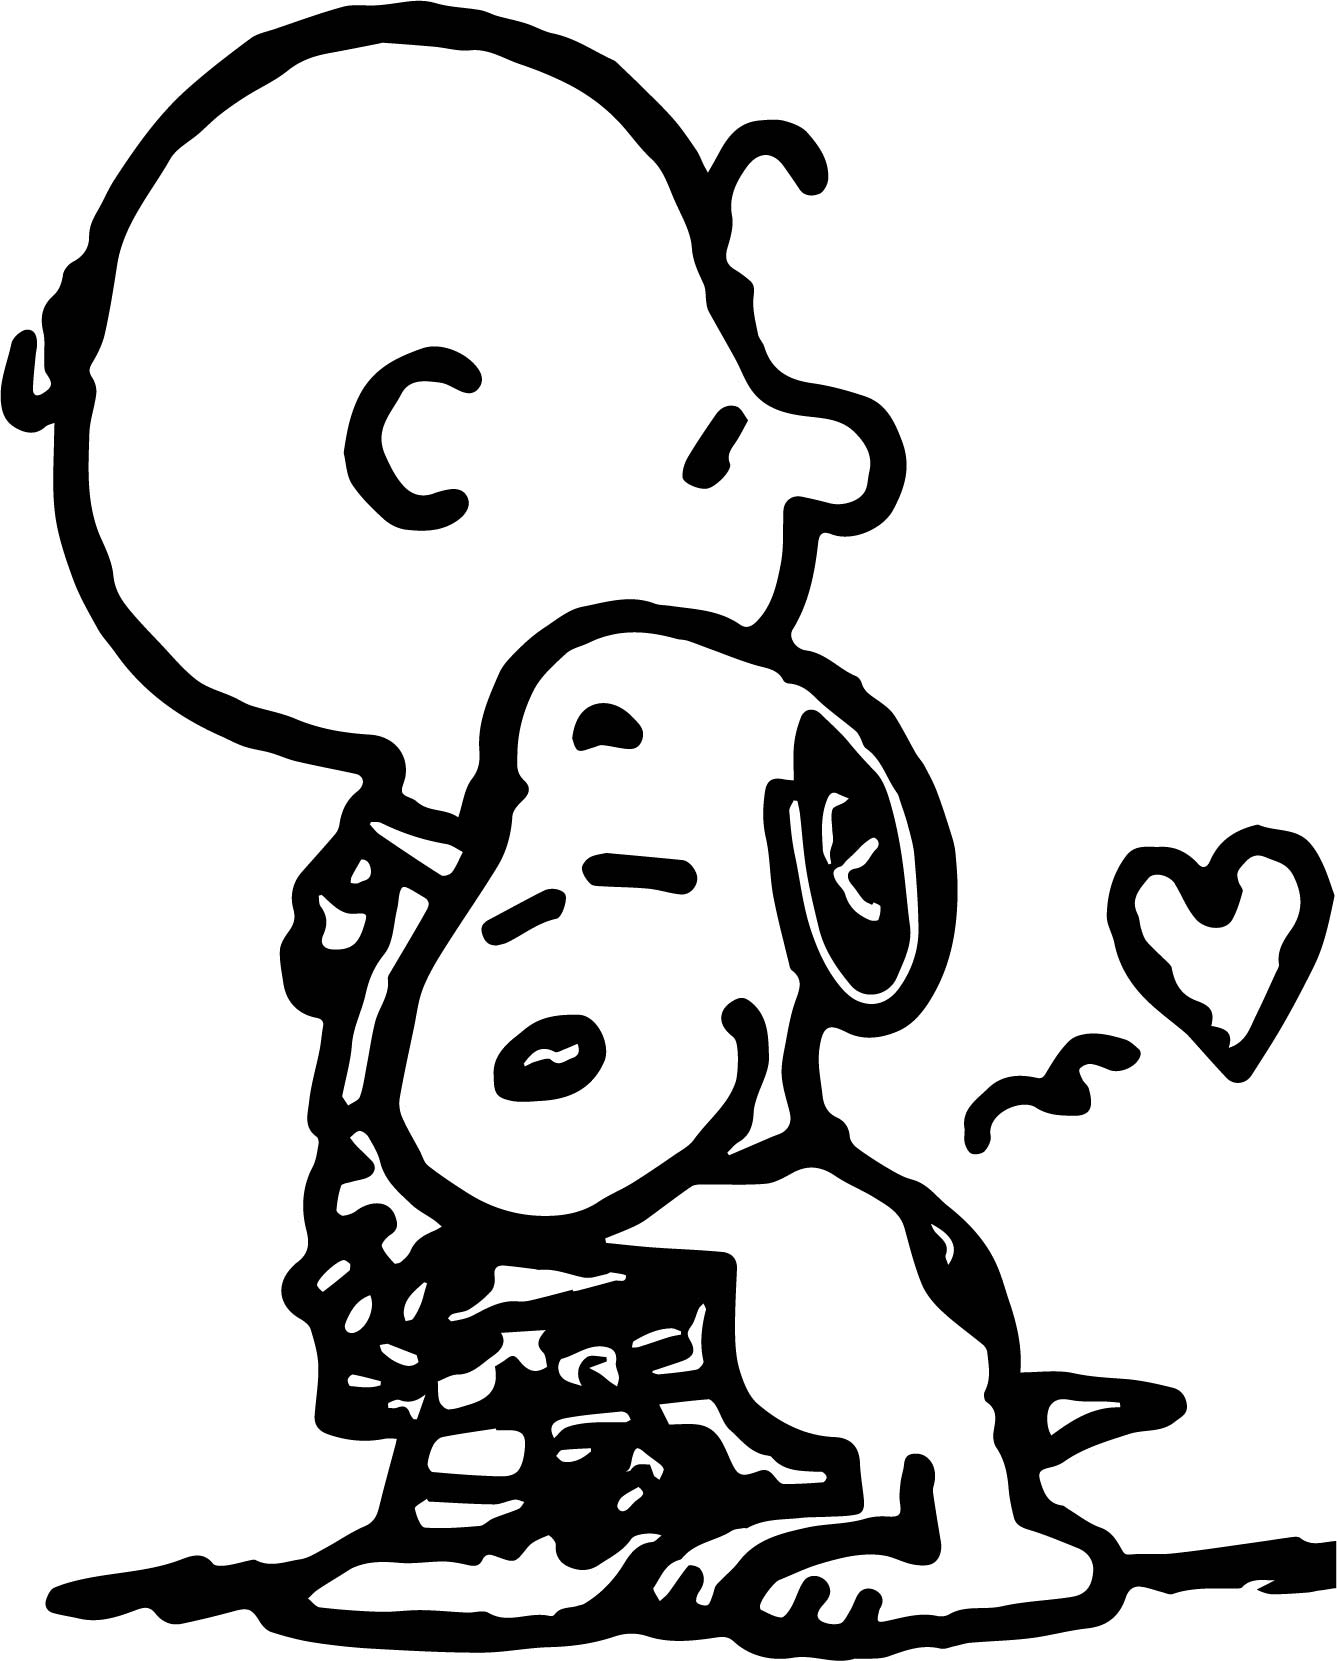 Charlie Brown And Snoopy Coloring Page Wecoloringpage